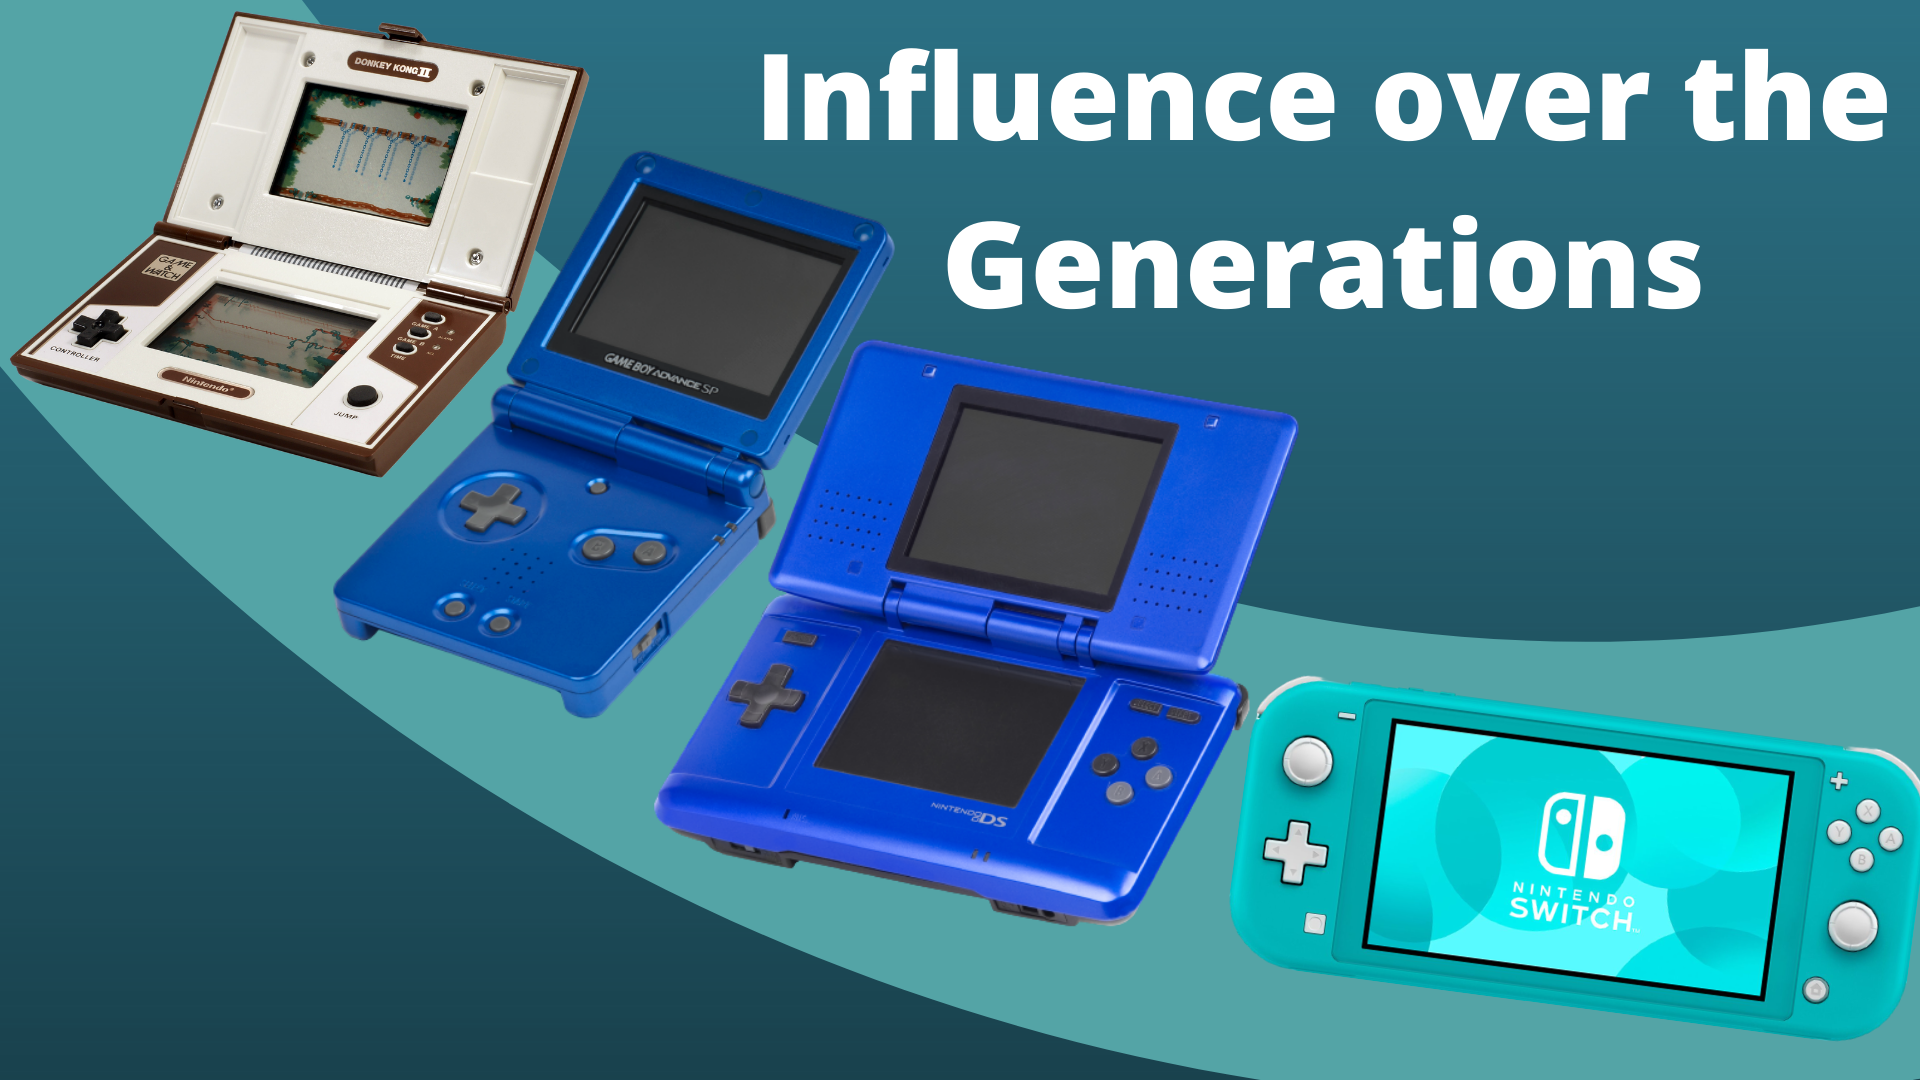 From the Game and Watch to the GameBoy SP influencing generations of consoles like Nintendo DS and even the Nintendo Switch.